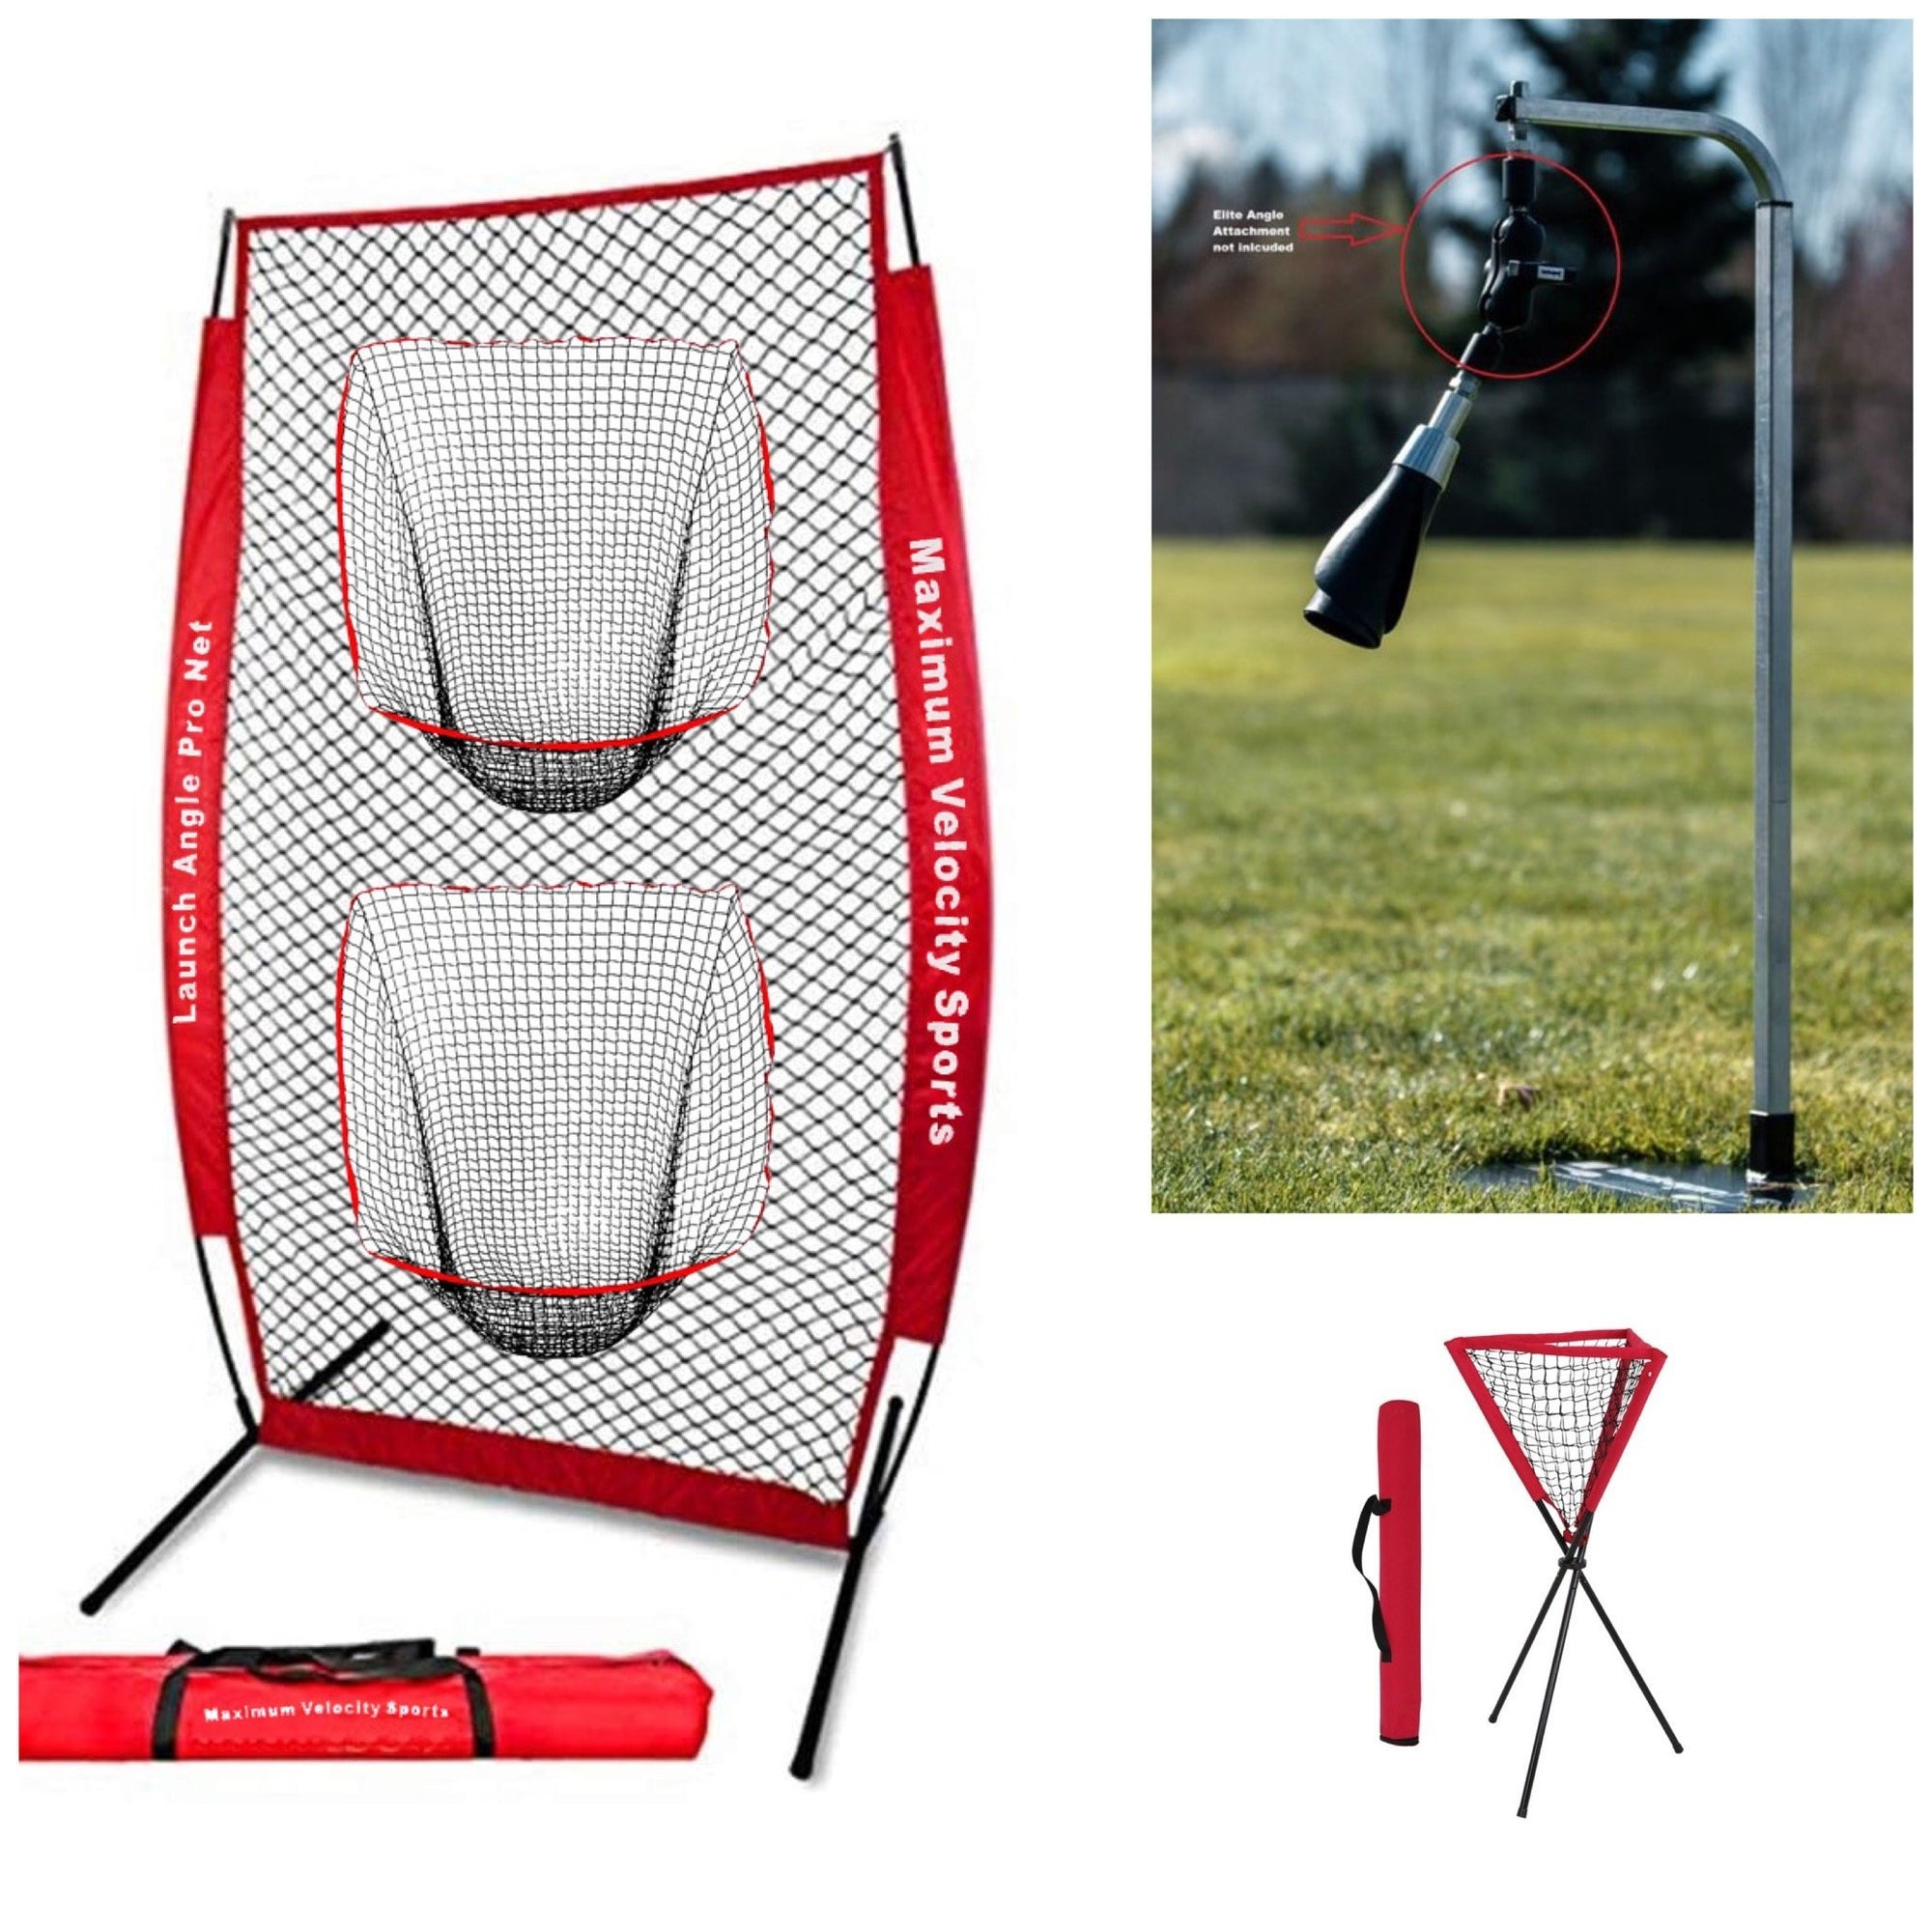 Line Drive Hitting Net, Backspin Tee Lite, Ball Caddy - Maximum Velocity Sports